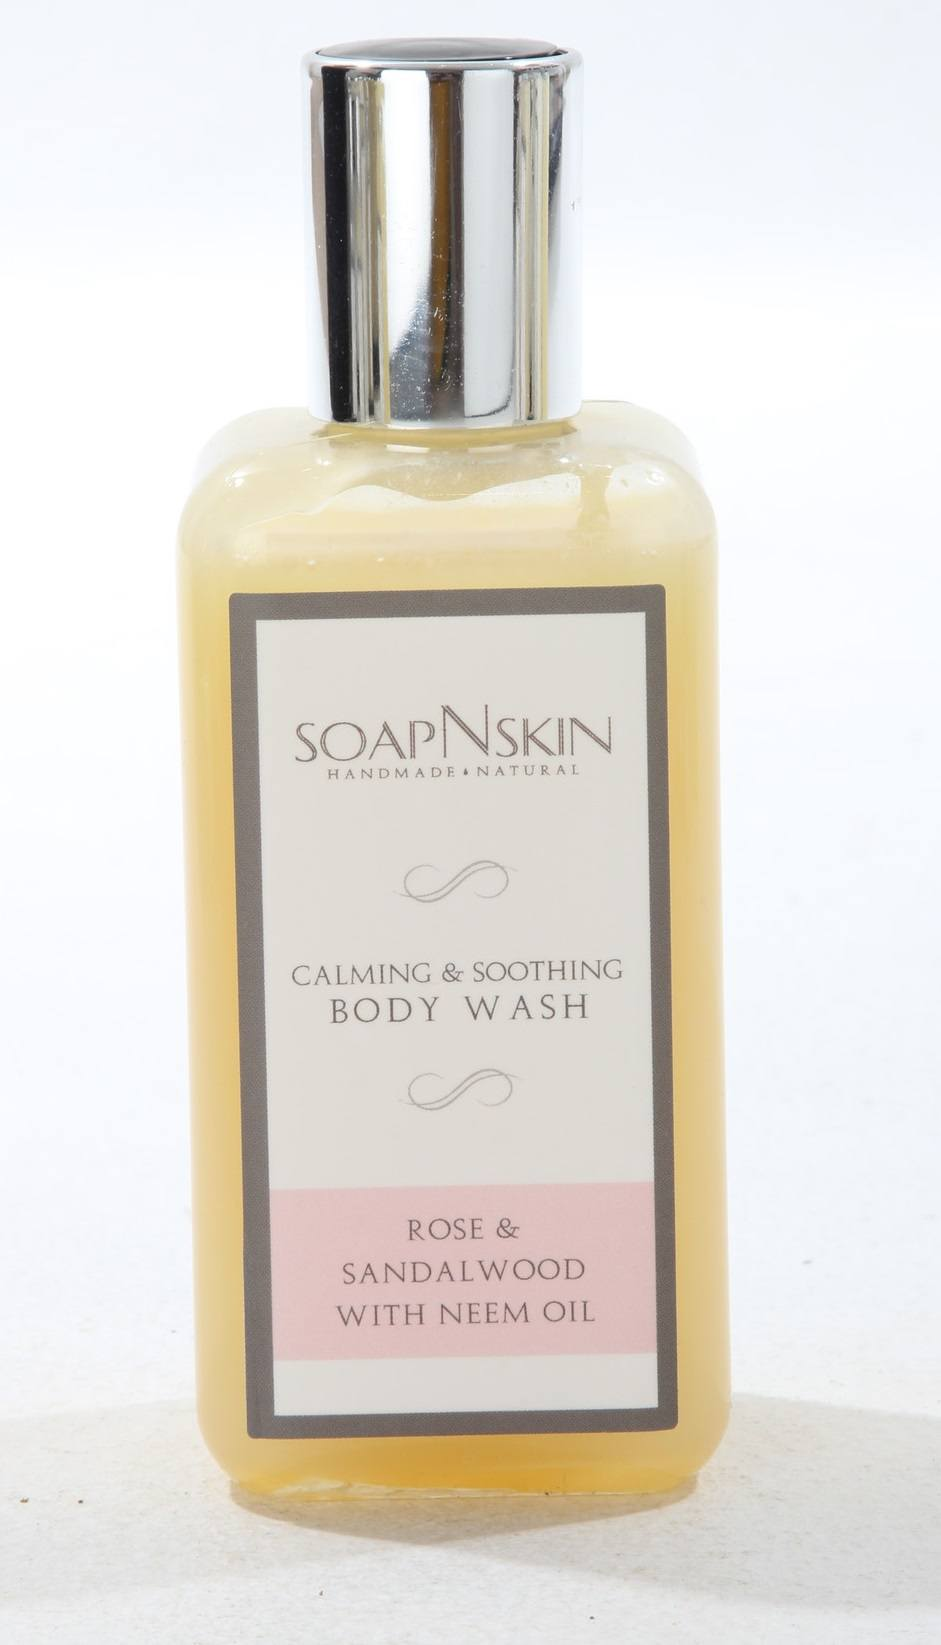 rose-and-sandalwood-with-neem-oil